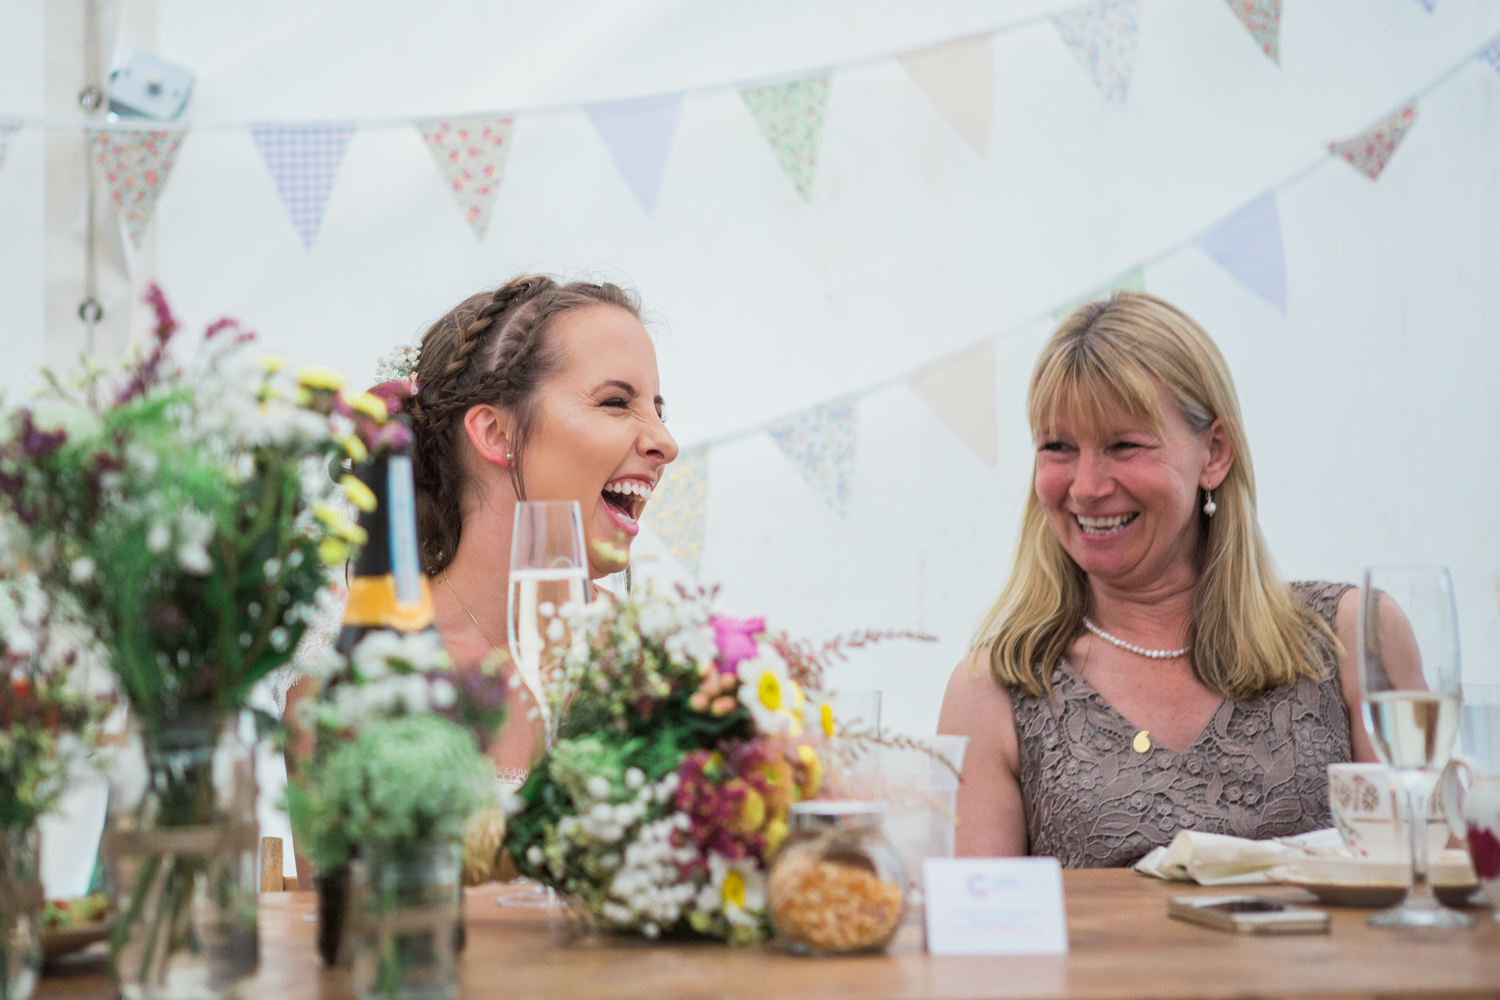 106Lotti & Dave marquee wedding Sophie Evans Photography West Midlands reportage wedding photography.jpg